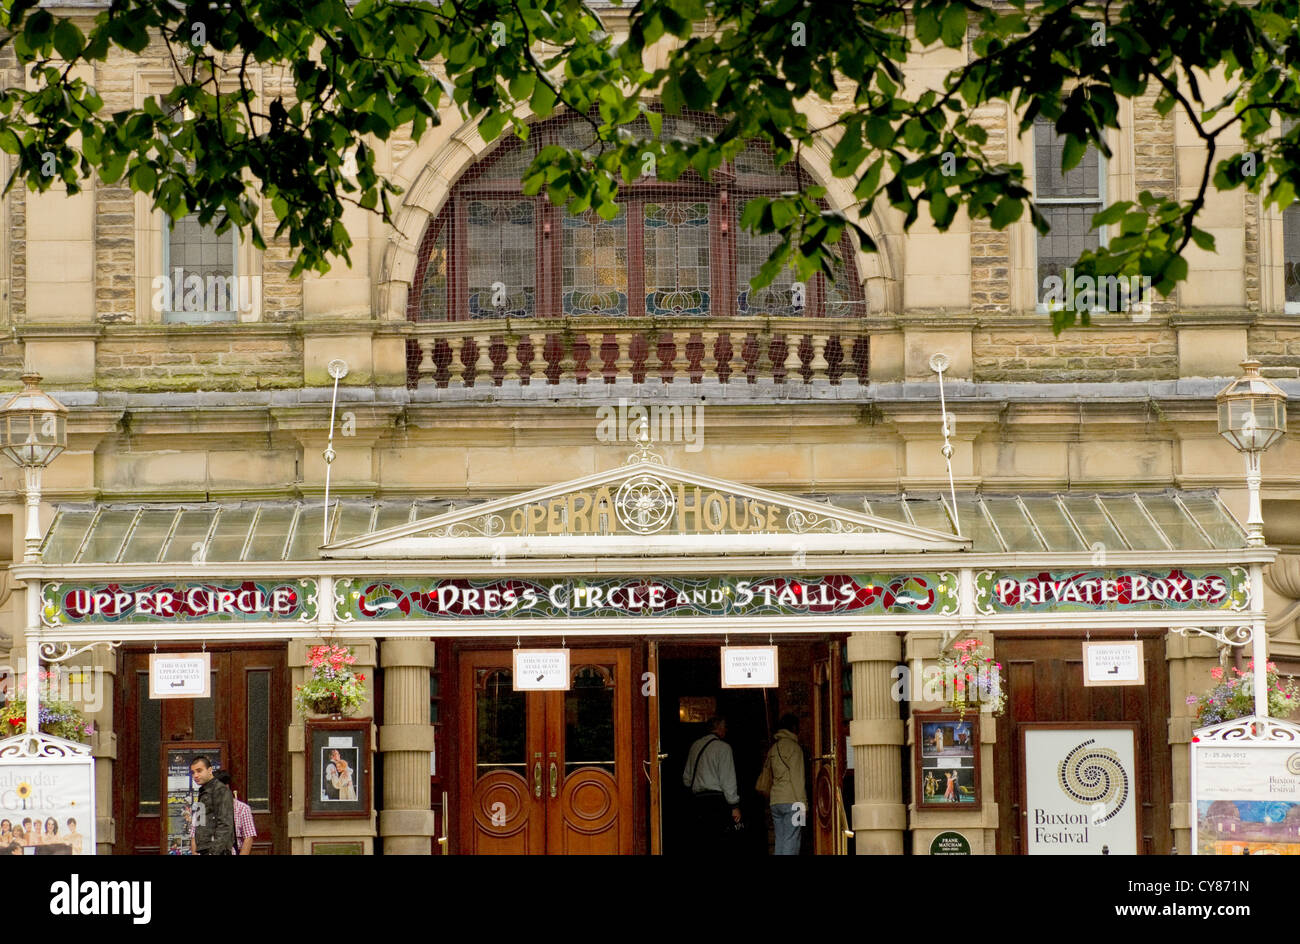 The Opera House was designed by the Edwardian theatre architect Frank Matcham. Opened in 1903, it was restored in - Stock Image